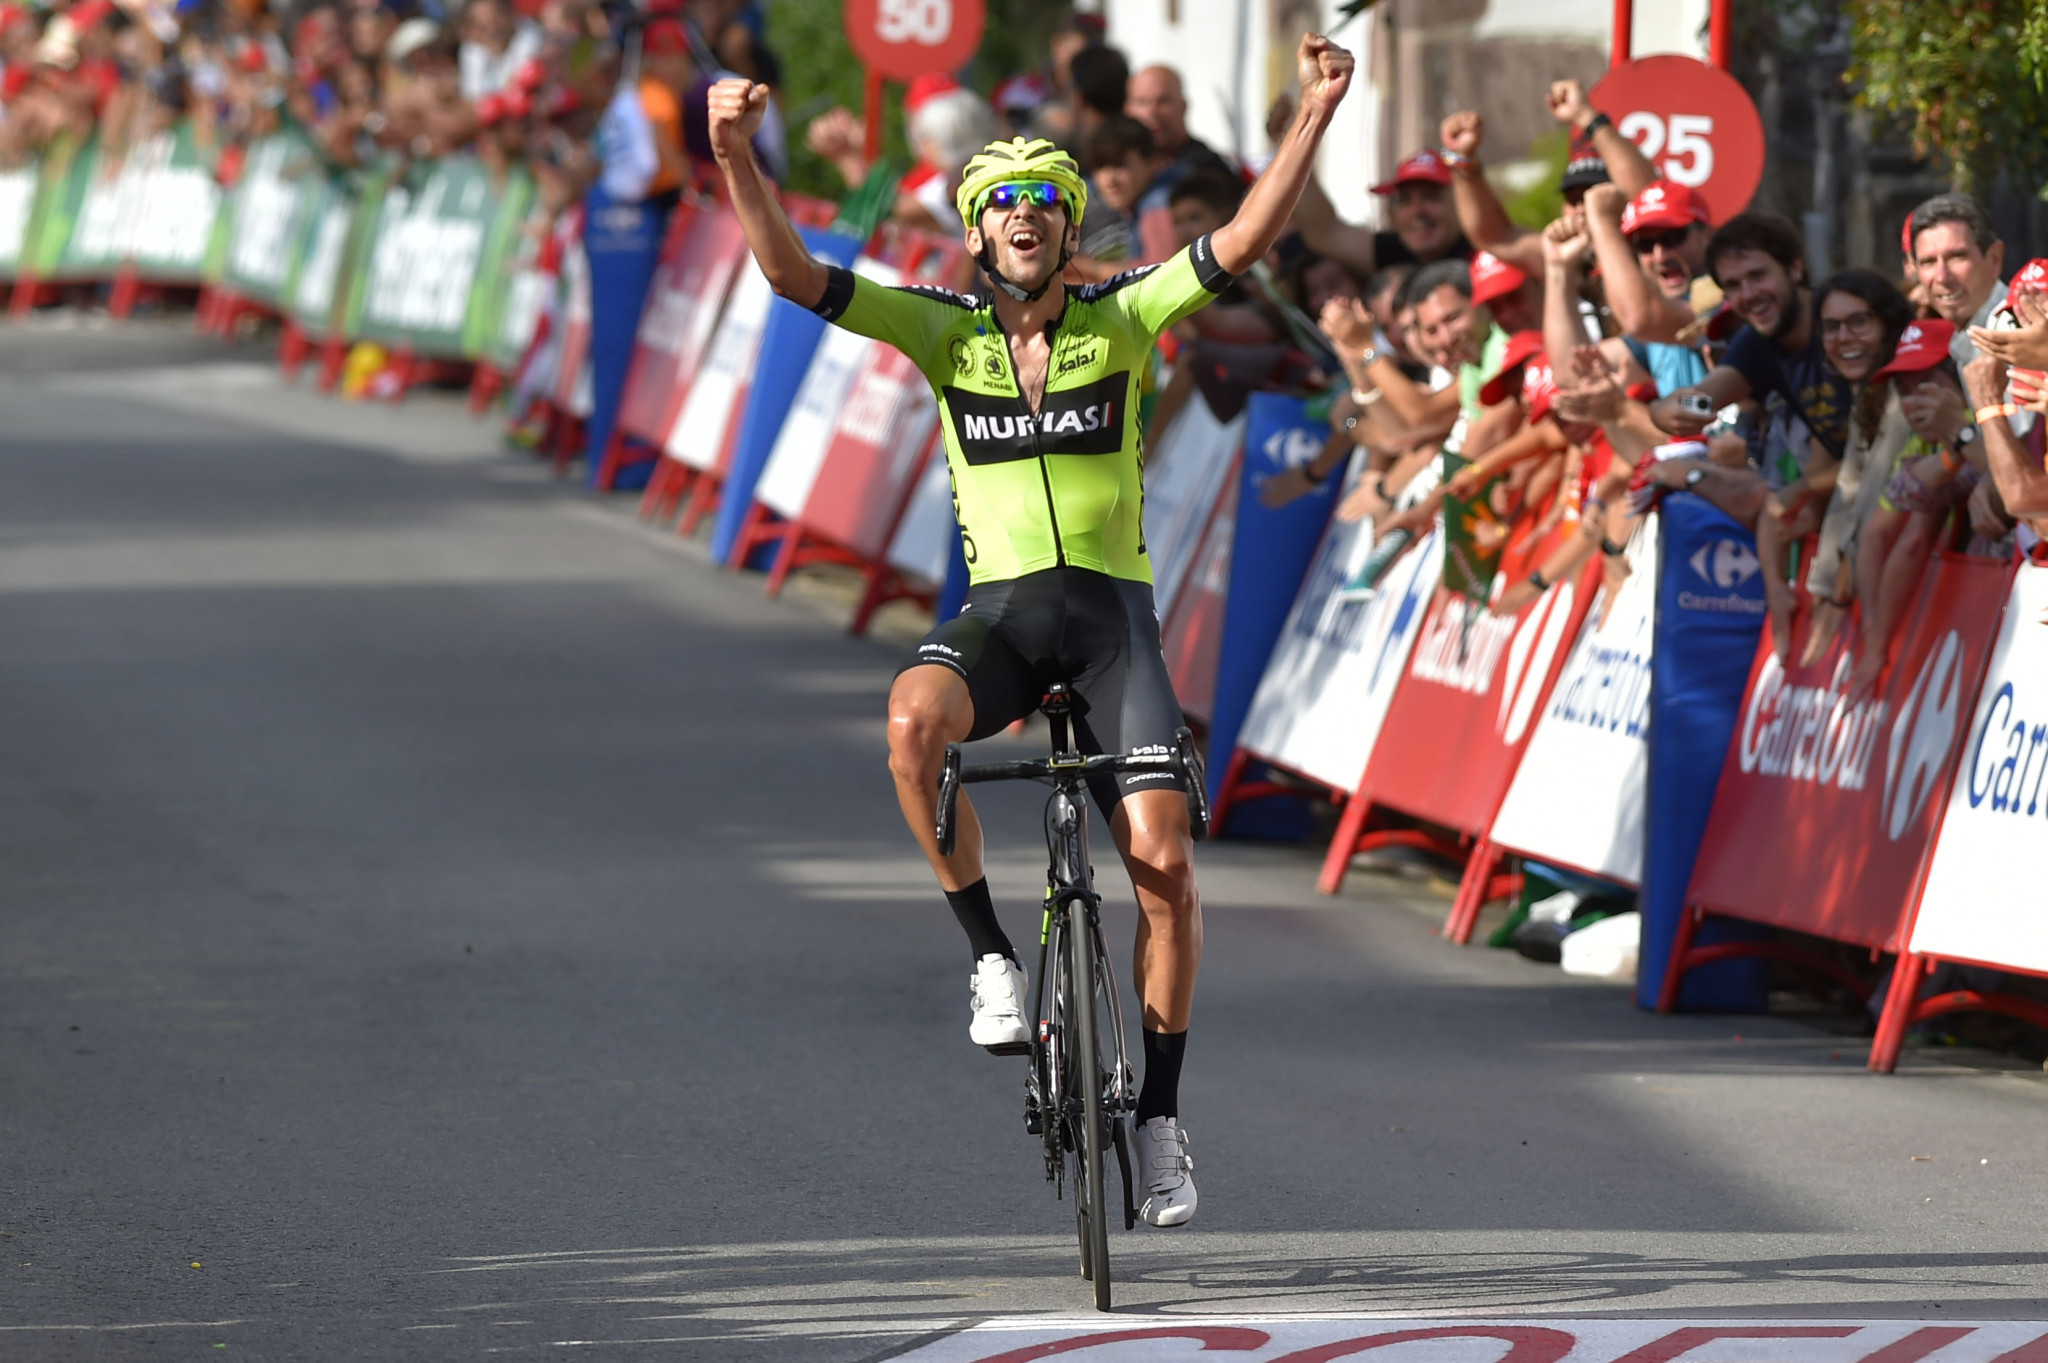 Iturria clinches first professional win with stage 11 victory at Vuelta a España